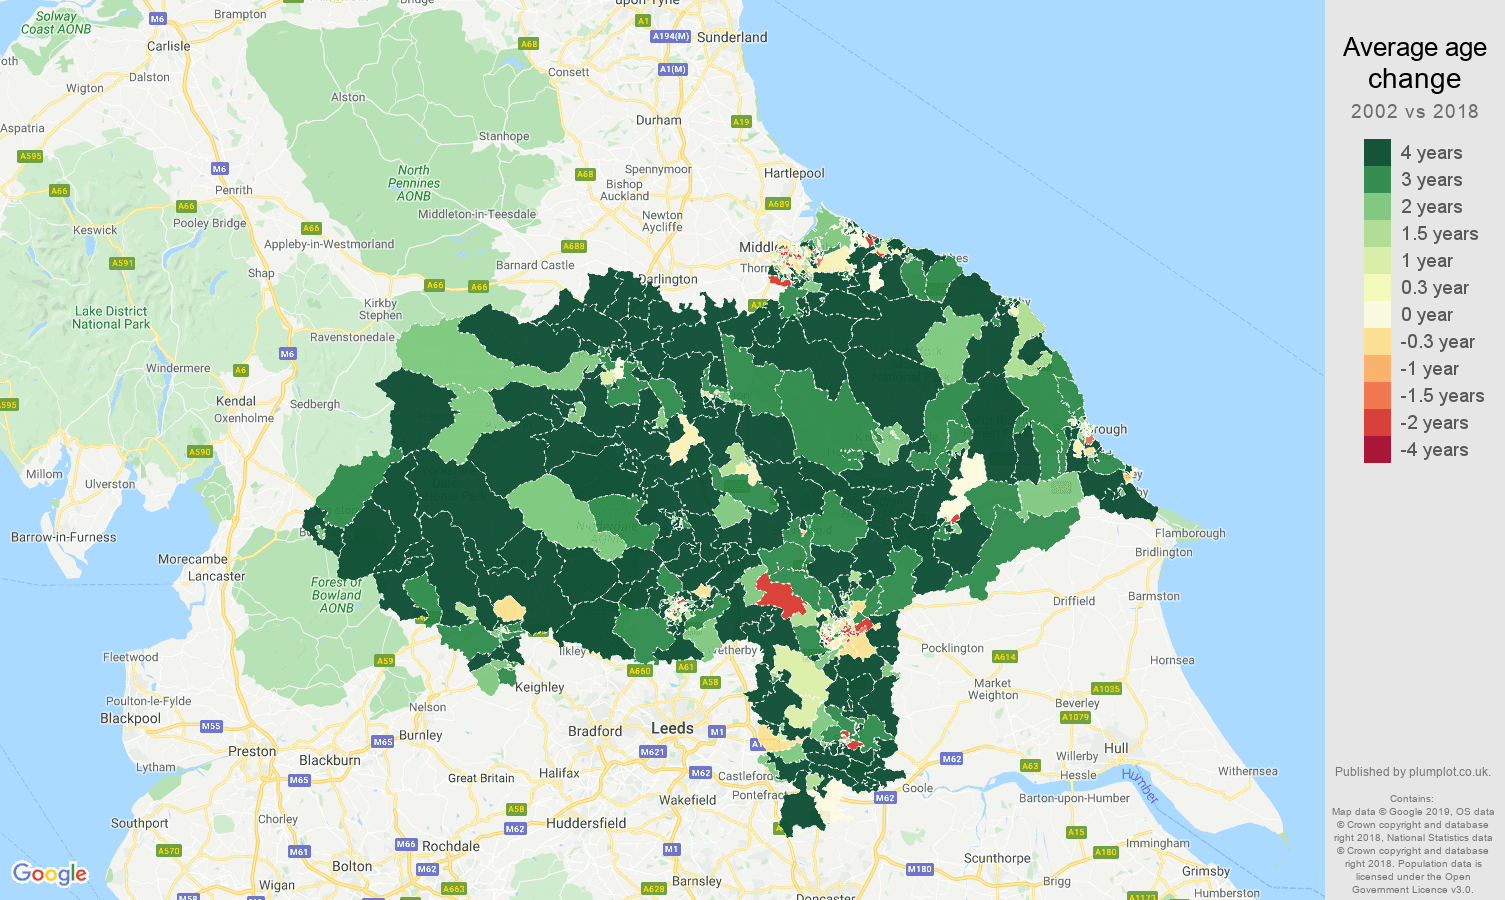 North Yorkshire average age change map